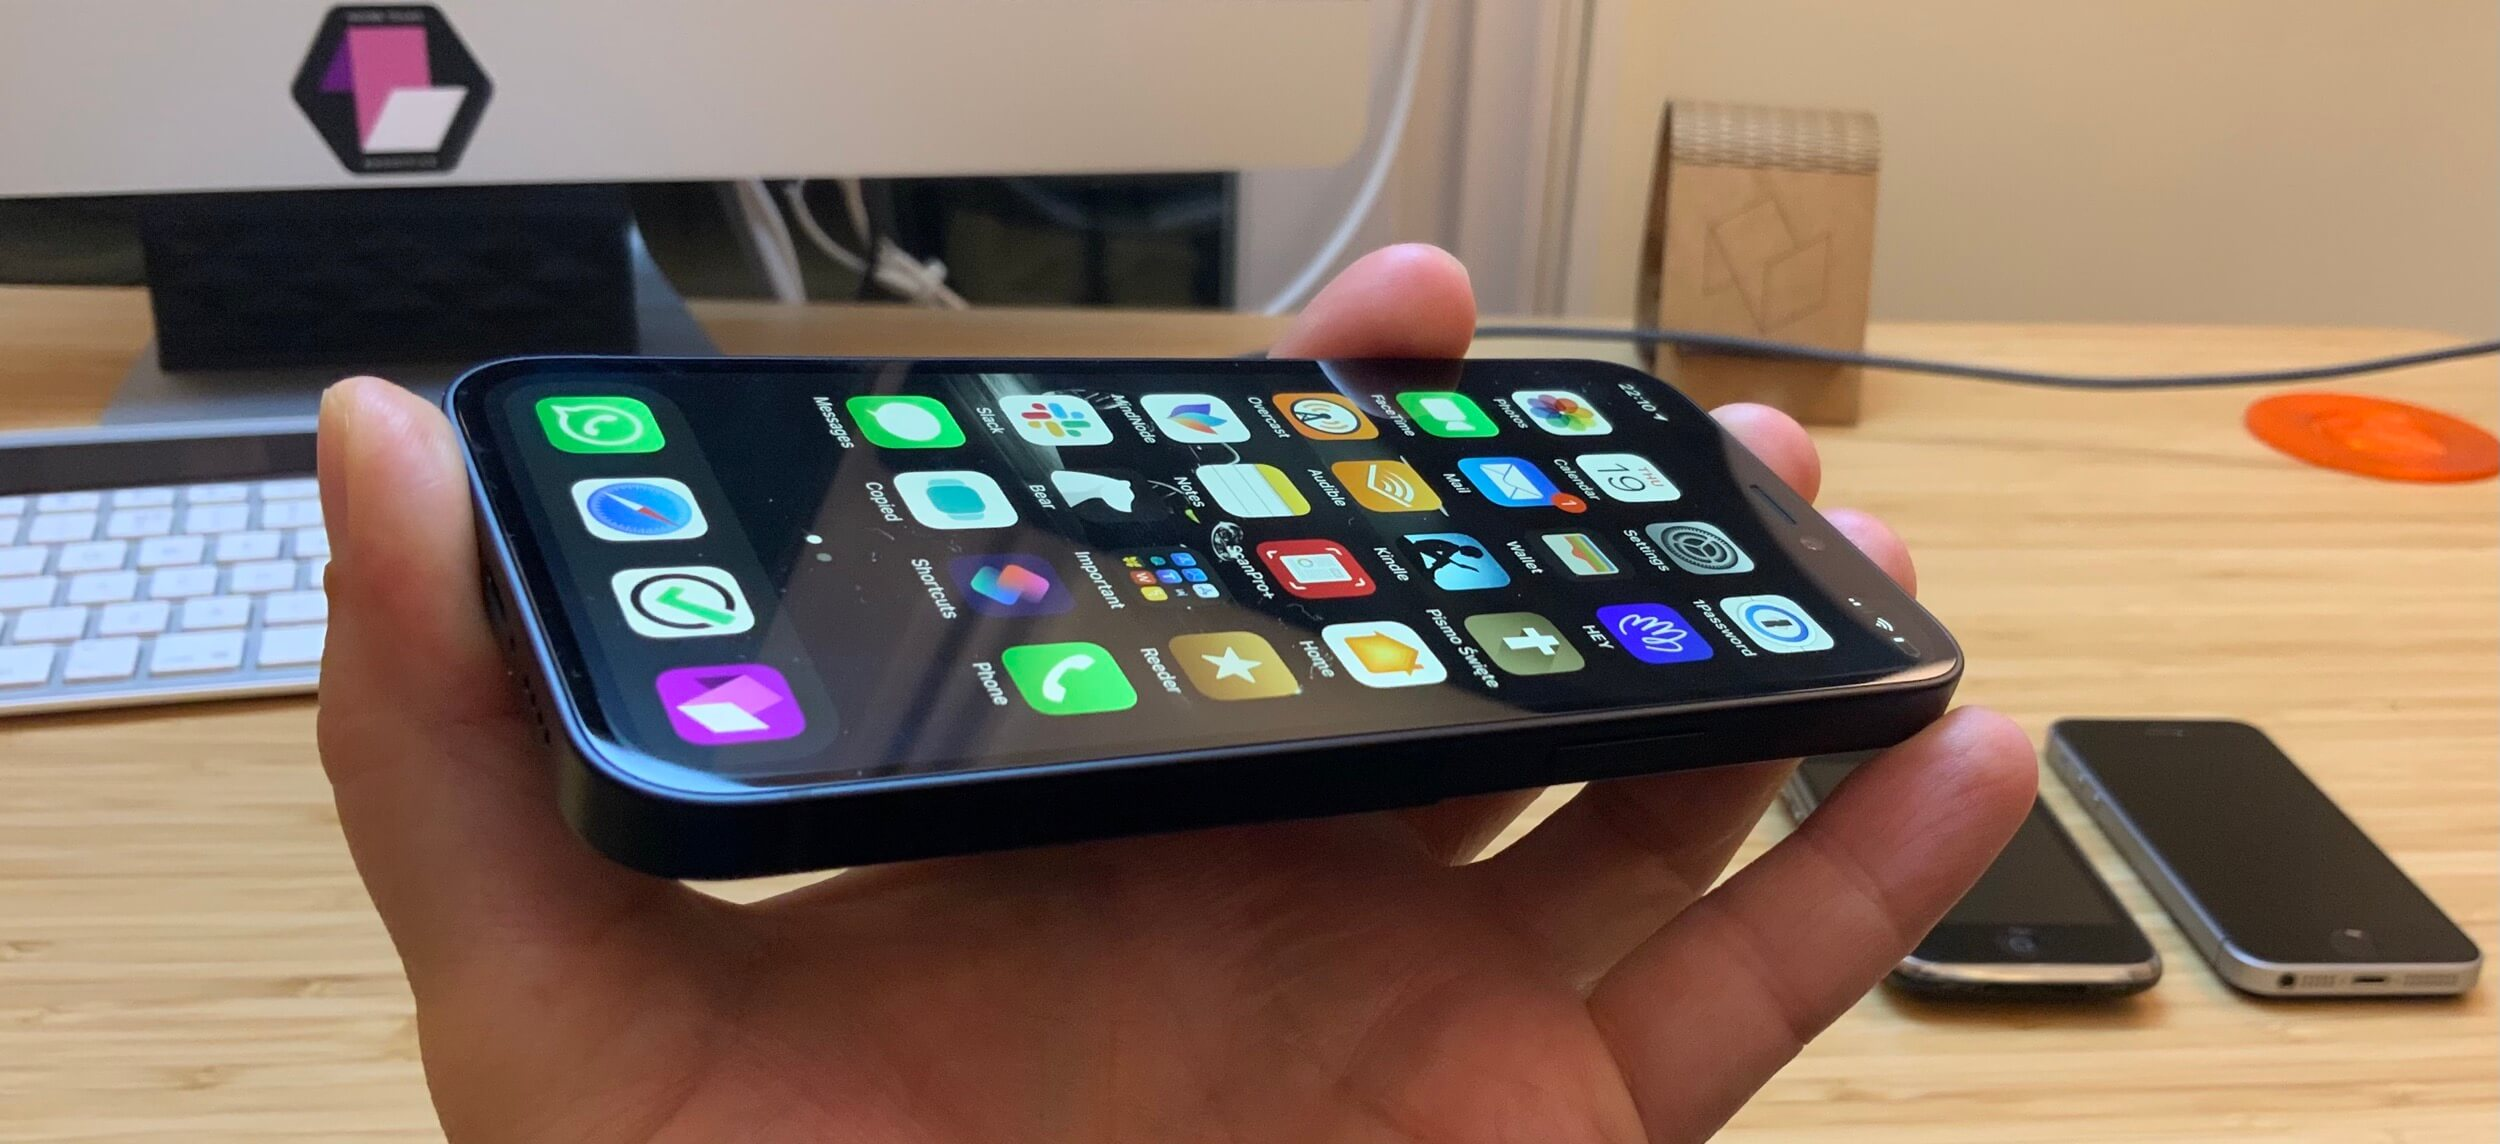 First impressions of the ultimate cuteness - the iPhone 12 Mini